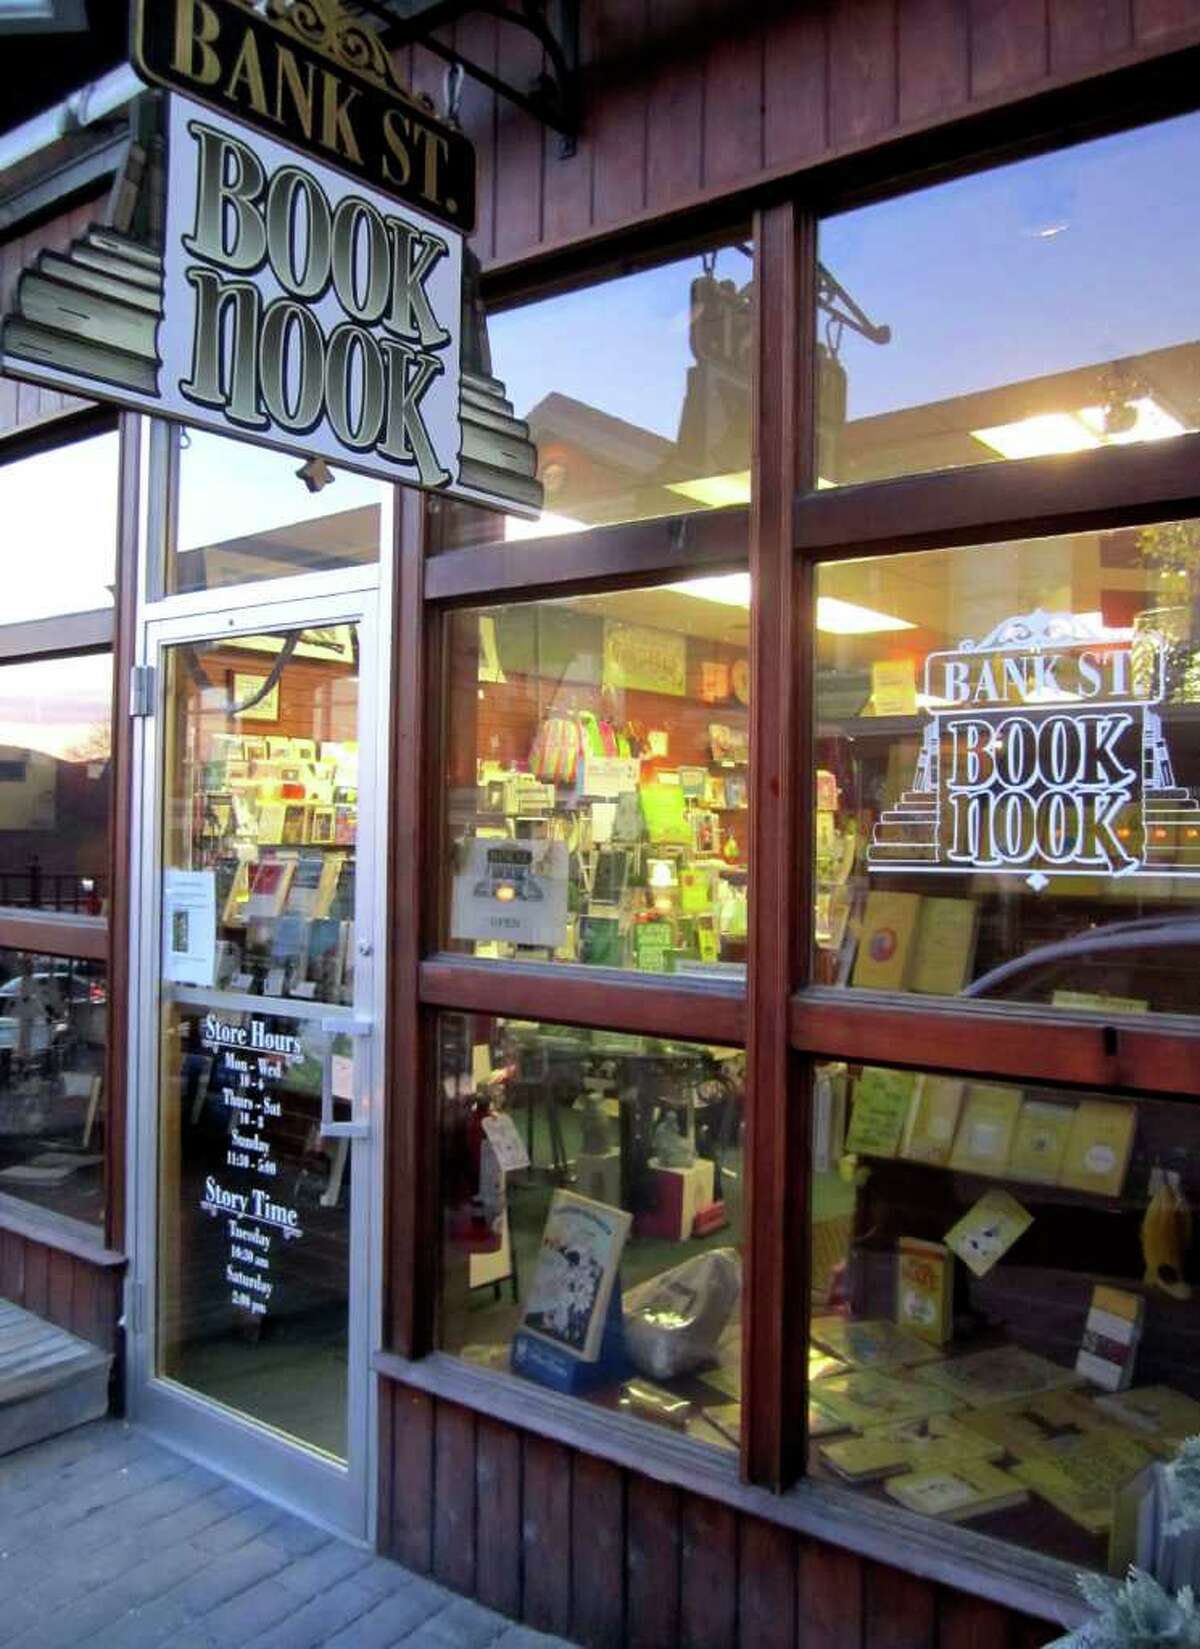 SPECTRUM/The Book Nook on Bank Street in New Miford is one of several independent book stories in the Greater New Milford area. March 1, 2011